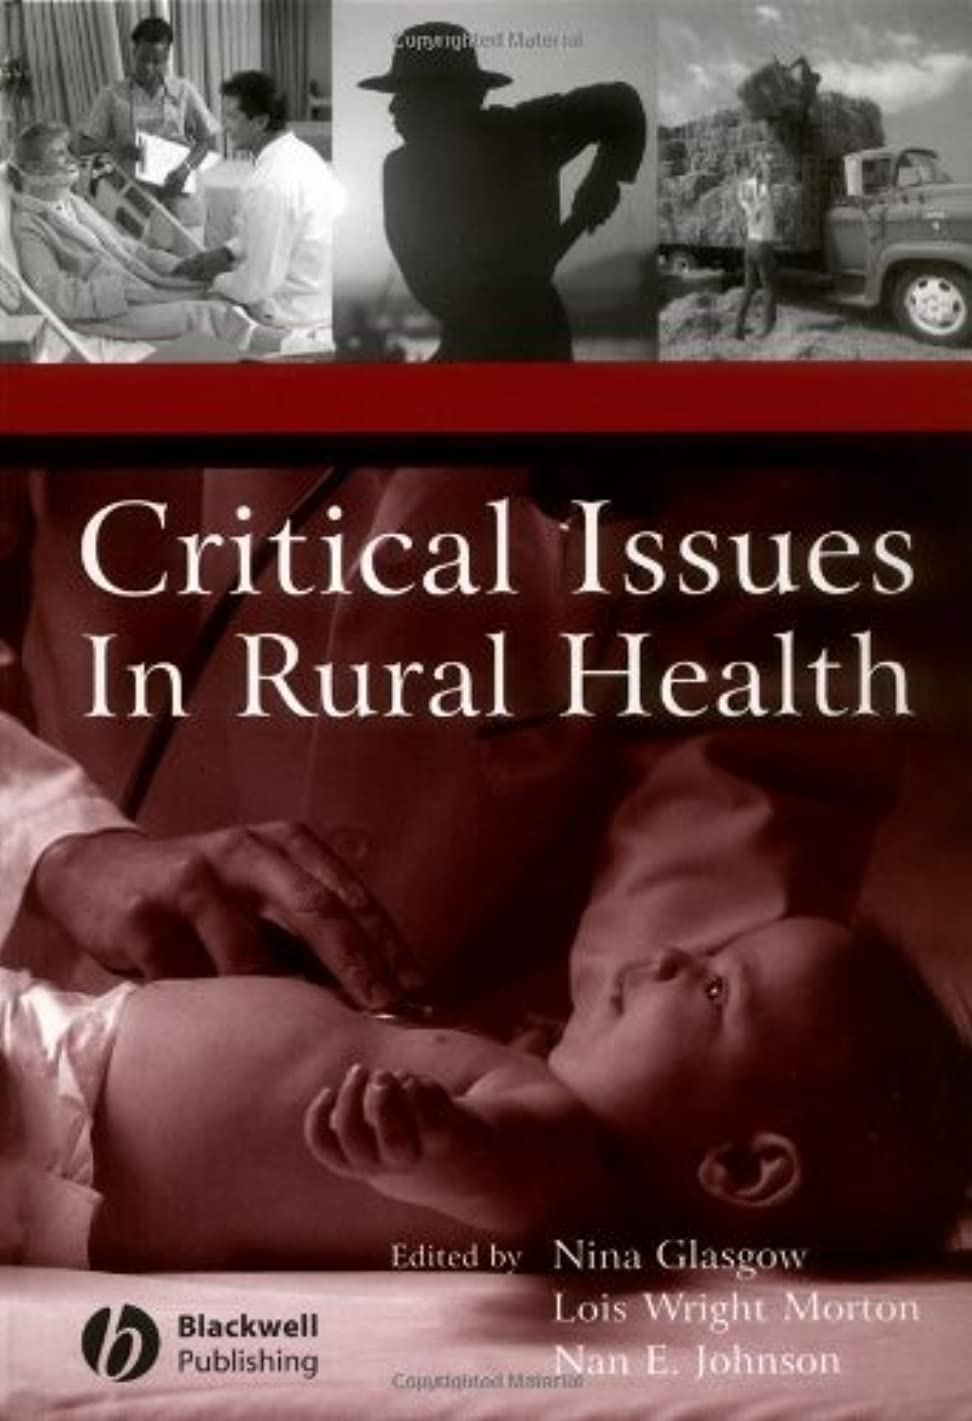 By Nina Glasgow - Critical Issues In Rural Health: 1st (first) Edition